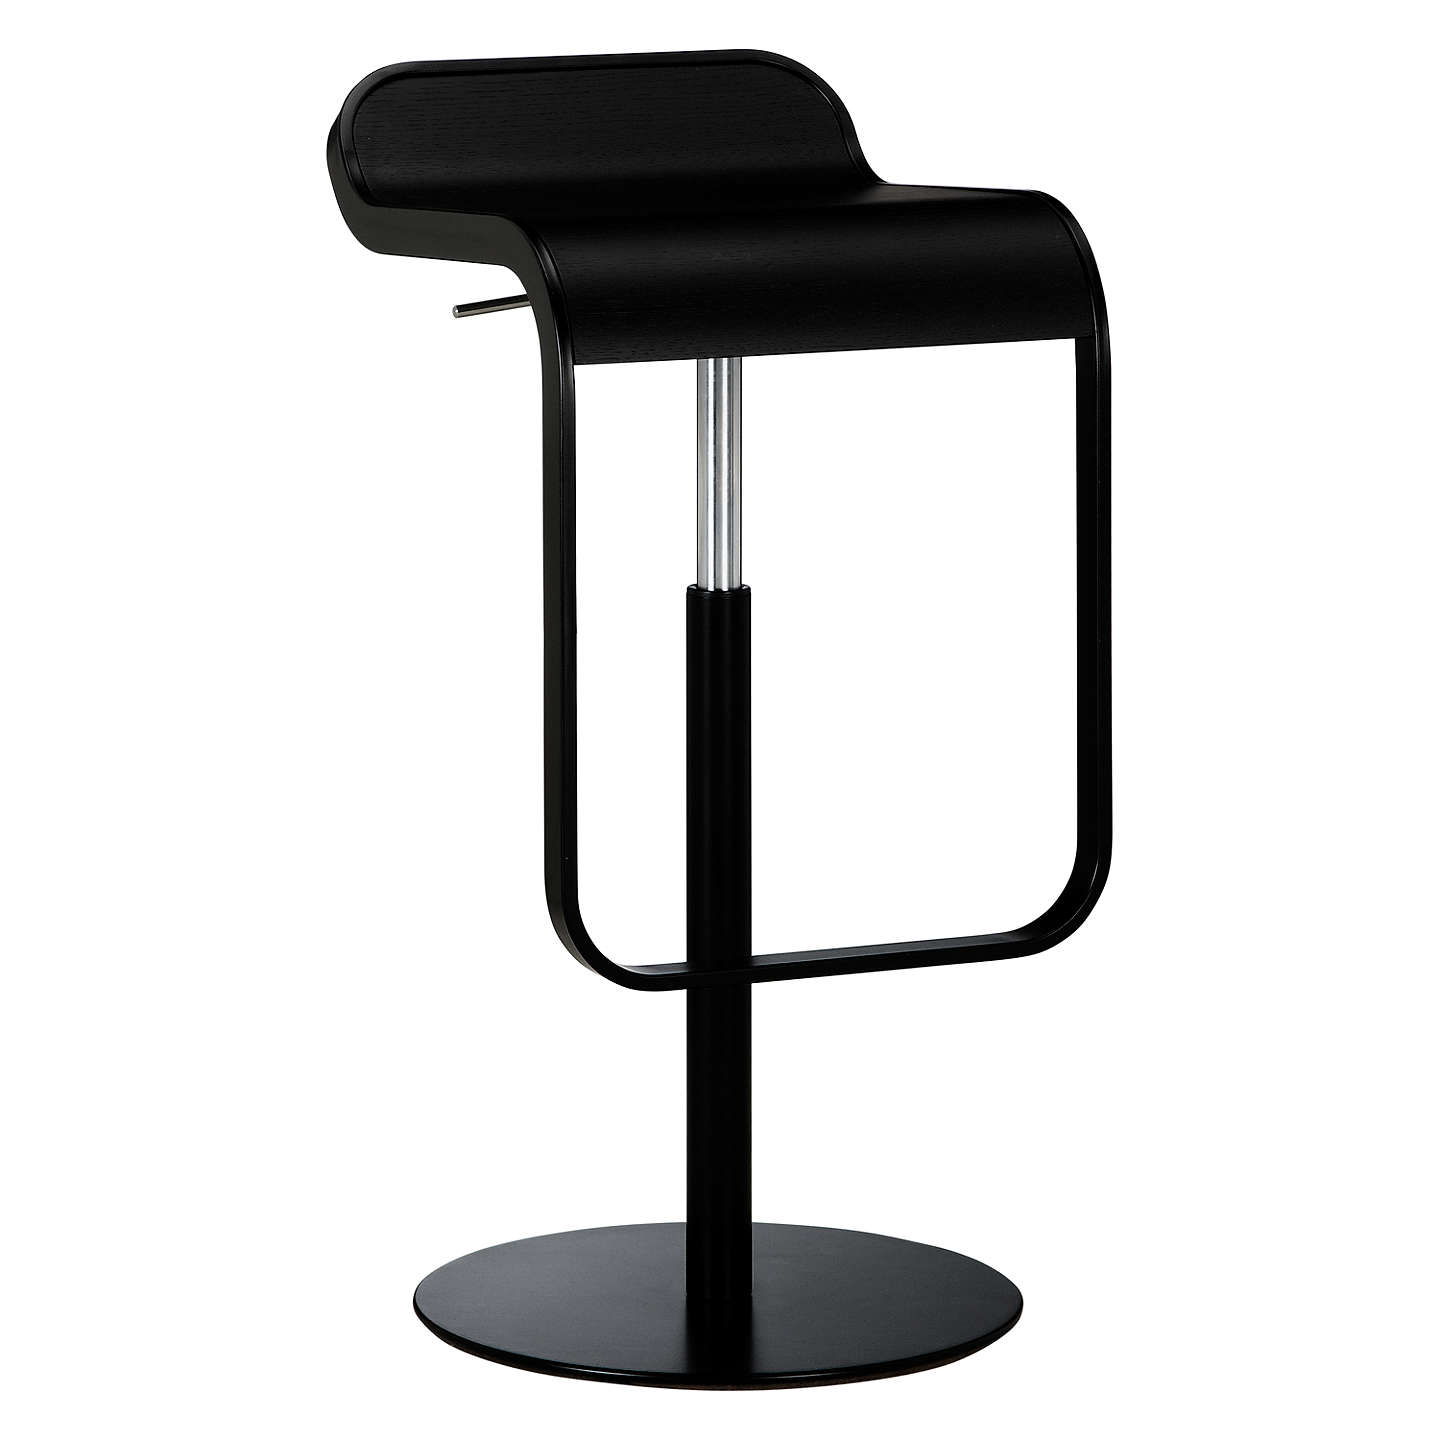 La palma lem bar stool black at john lewis for Lem lapalma